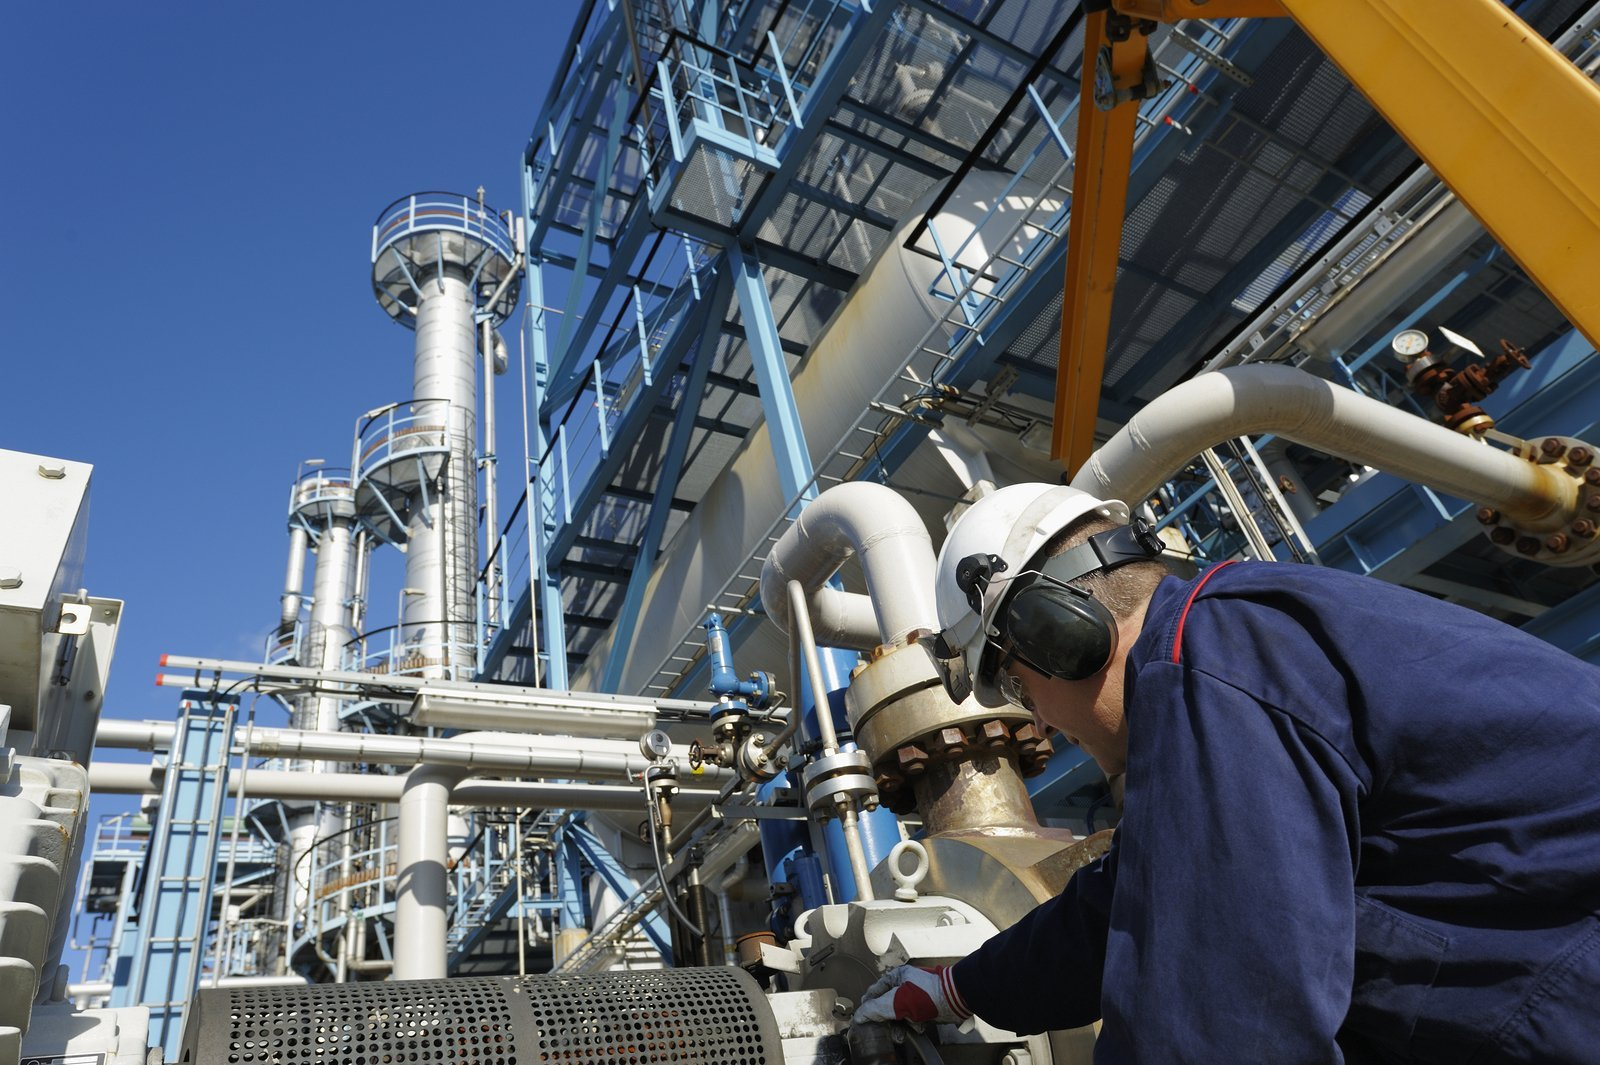 Inspections for oil refineries